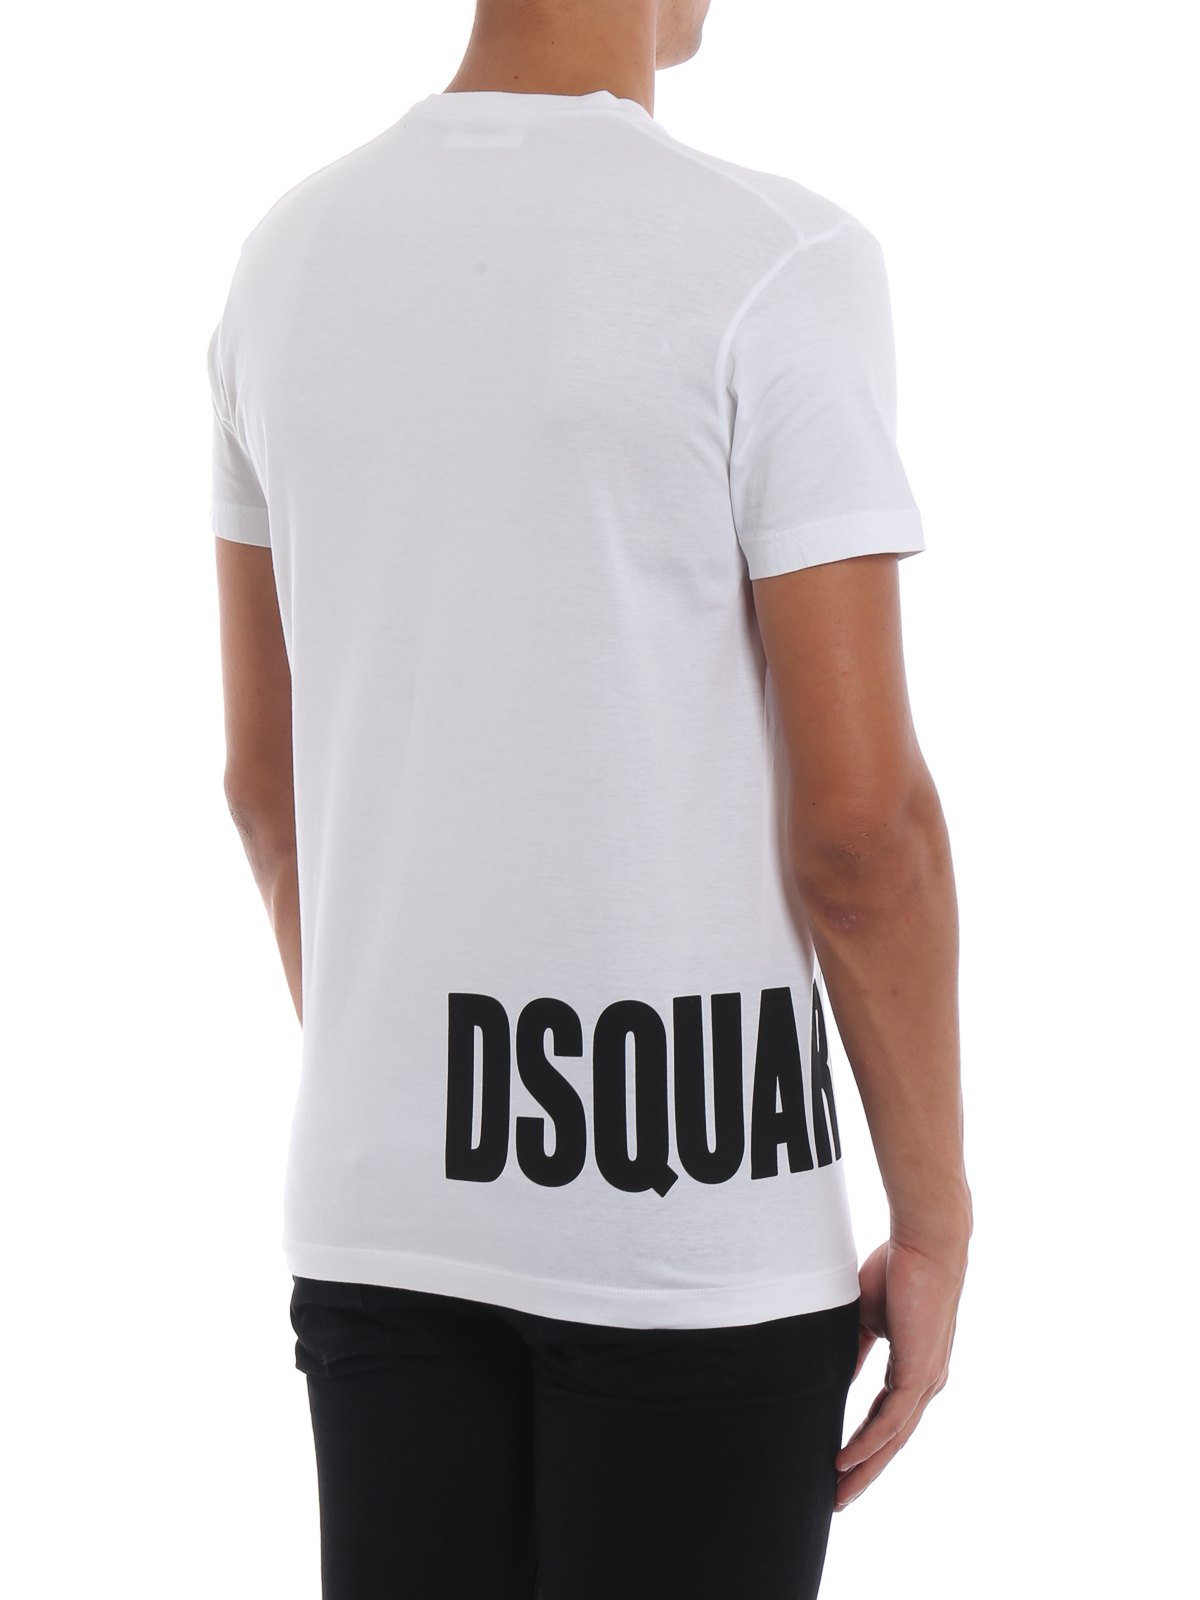 Dsquared2 - T-shirt bianca in cotone con stampa Dsquared2 - t-shirt ... 06c0203d5f7f